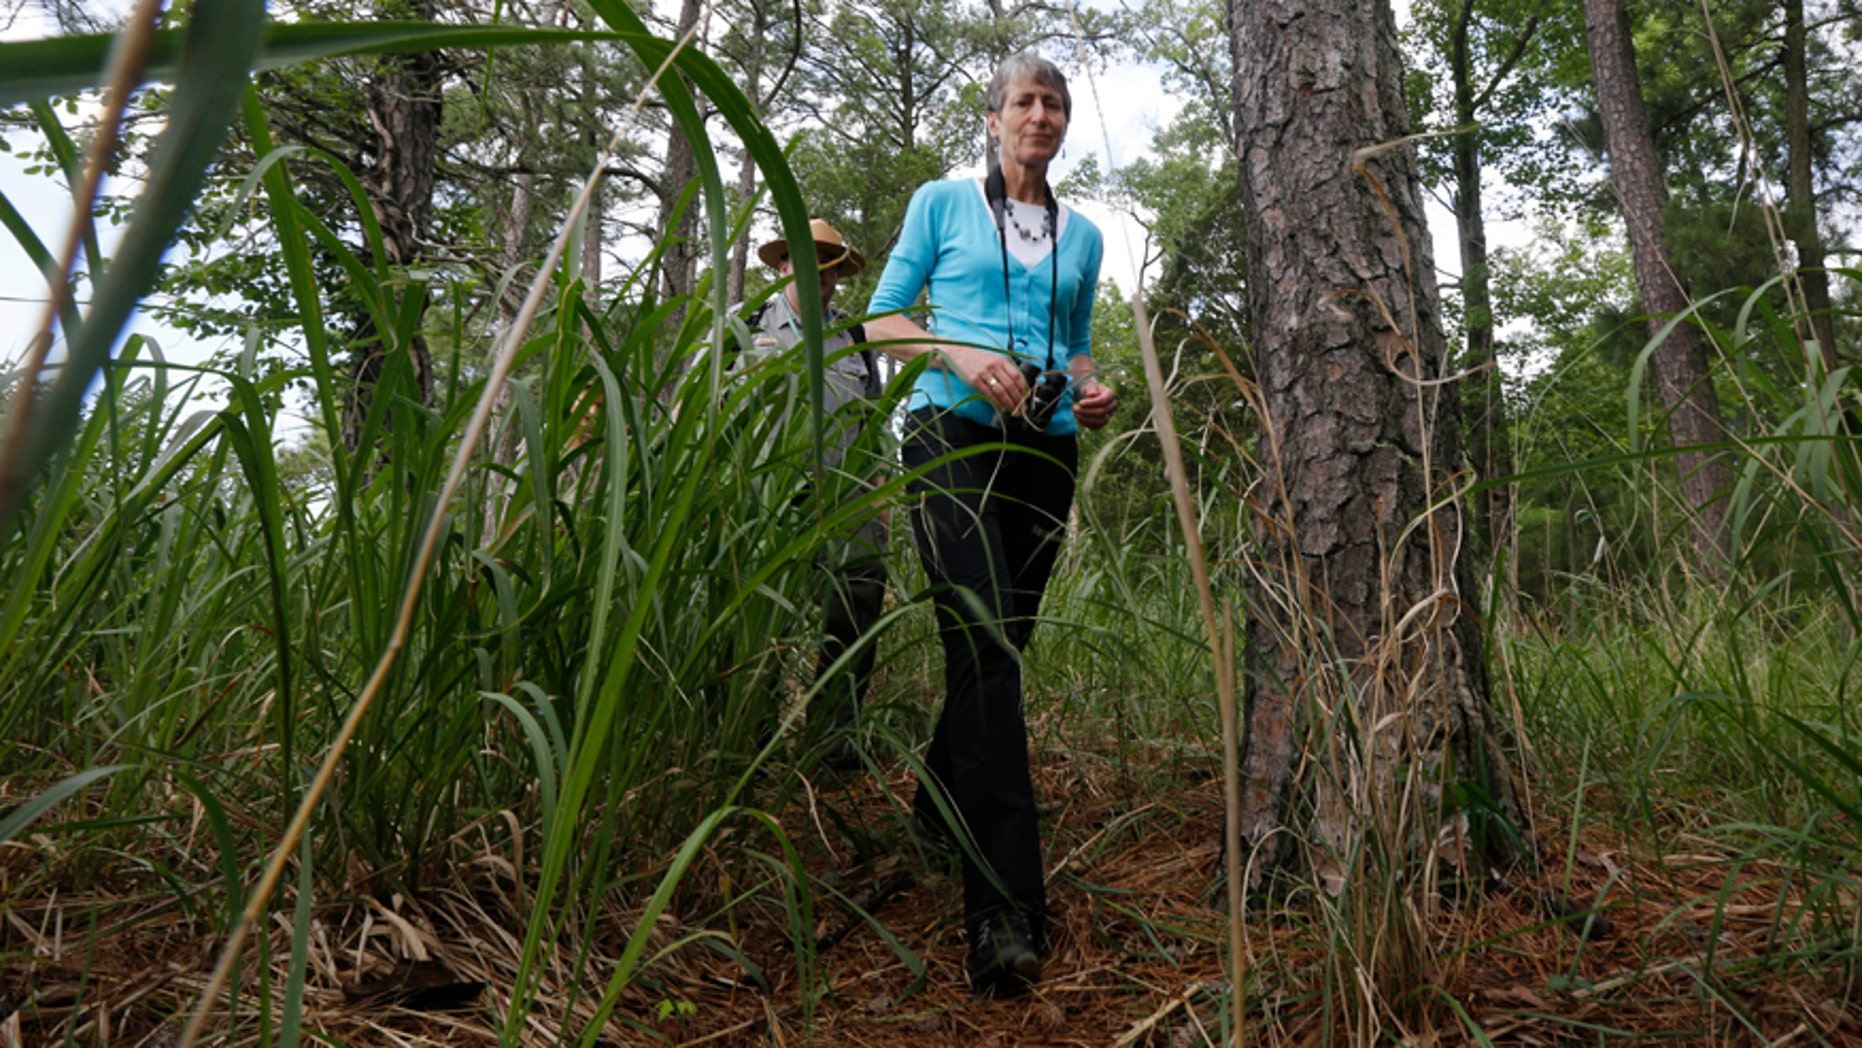 U.S. Interior Secretary Sally Jewell walks through the woods during a tour of Jamestown Island in Jamestown, Va., Thursday, June 5, 2014.